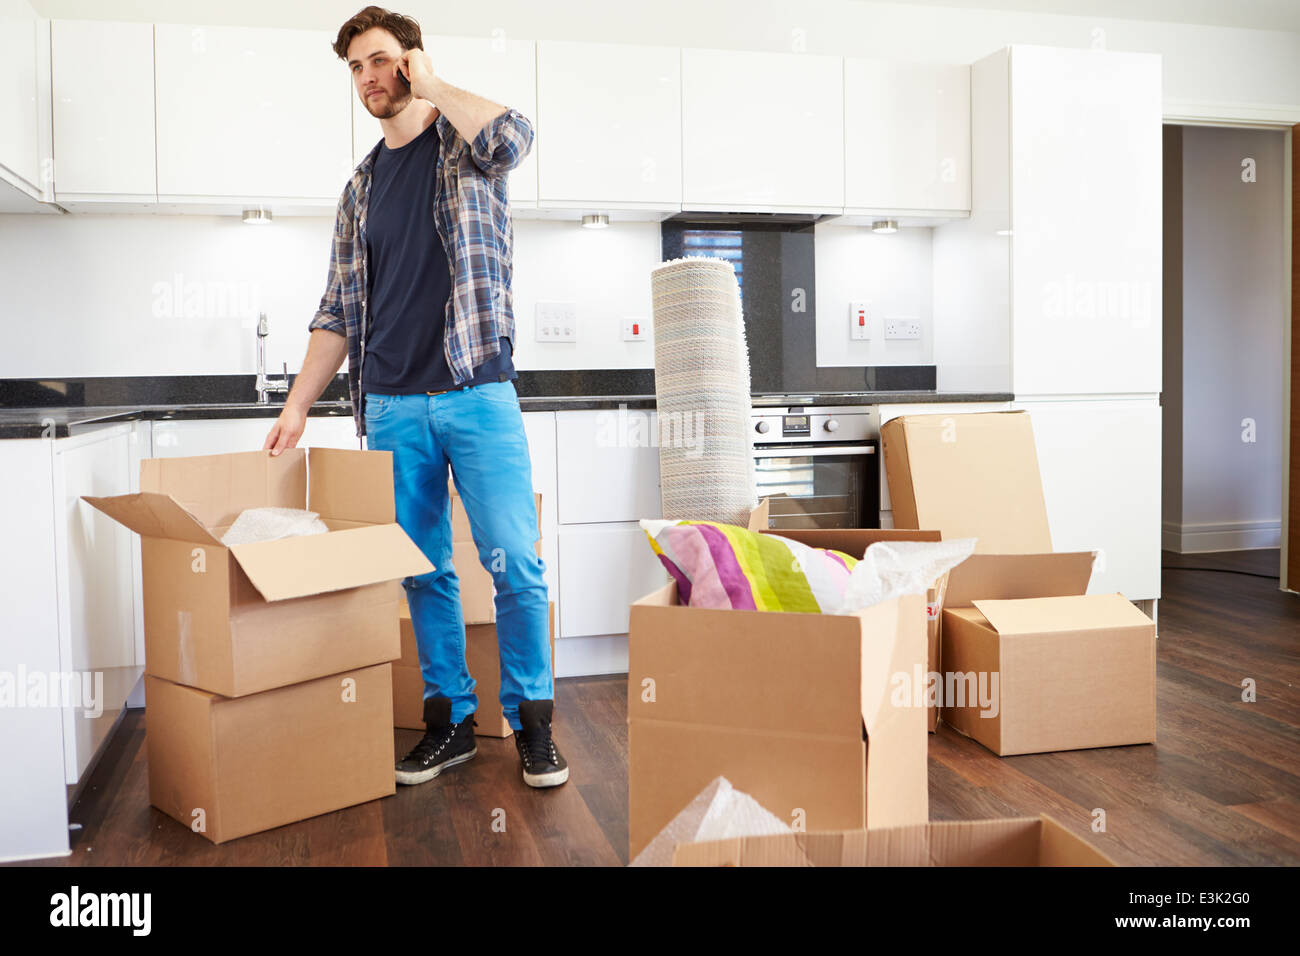 Man Moving Into New Home Talking On Mobile Phone - Stock Image